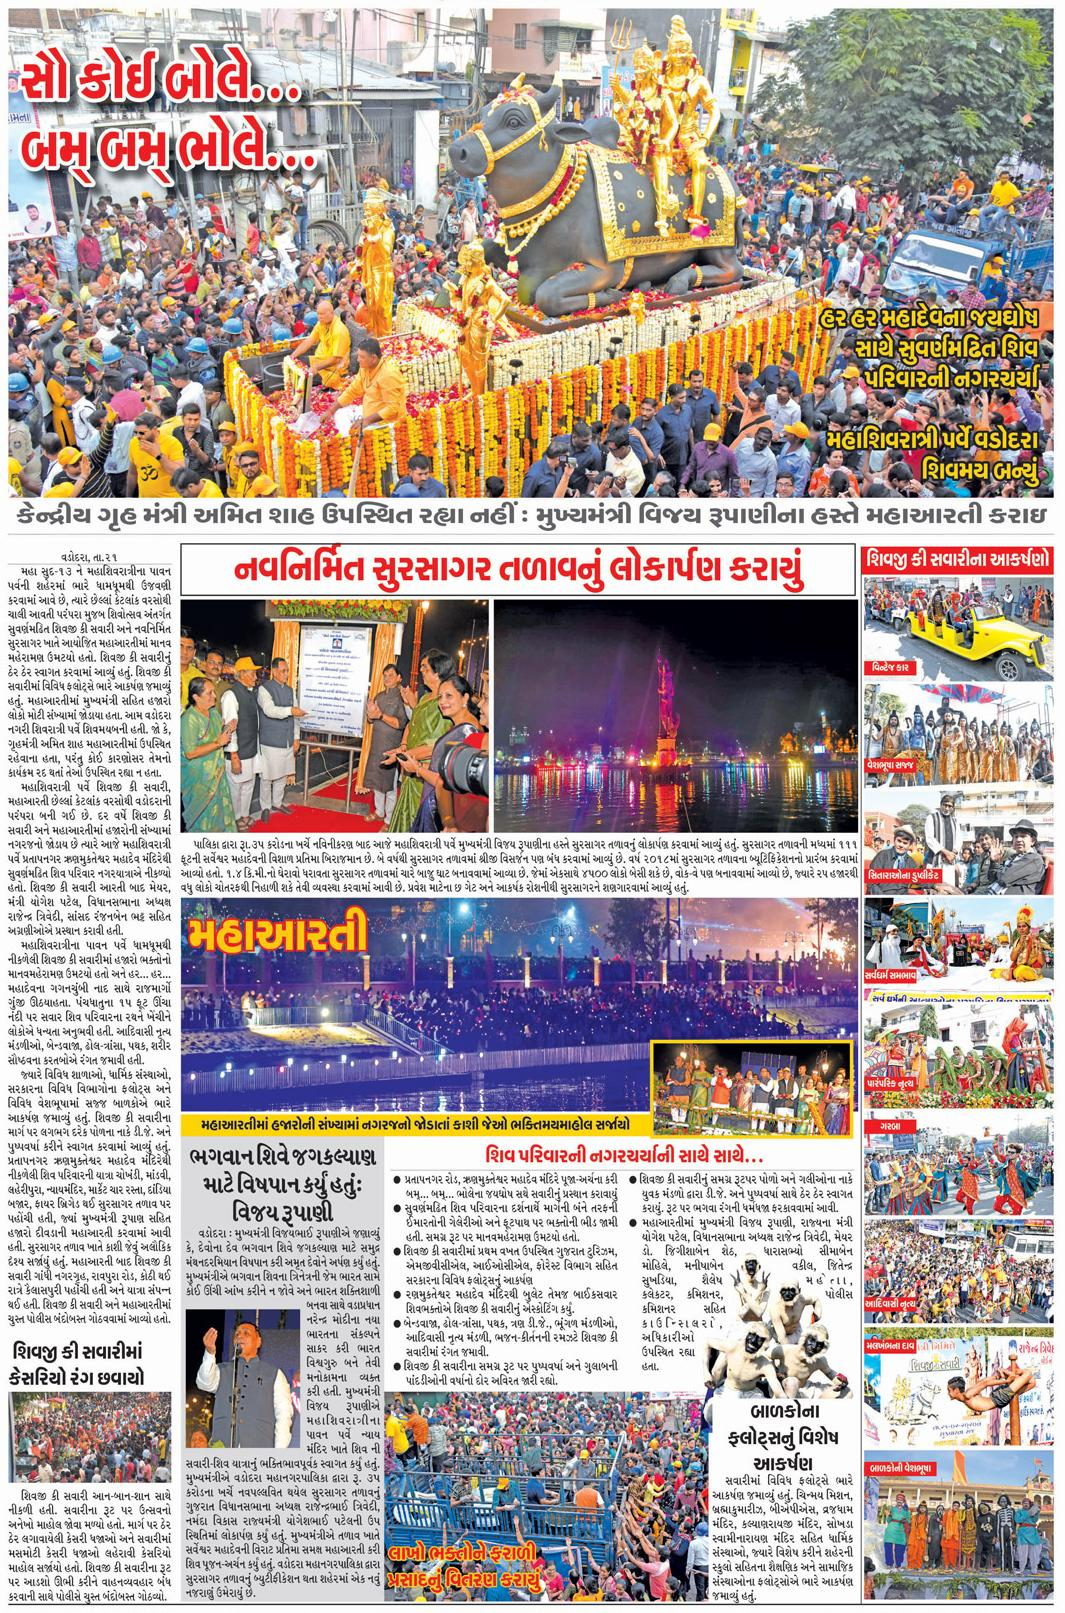 Loksatta Jansatta News Papaer E-paper dated 2020-02-22 | Page 5